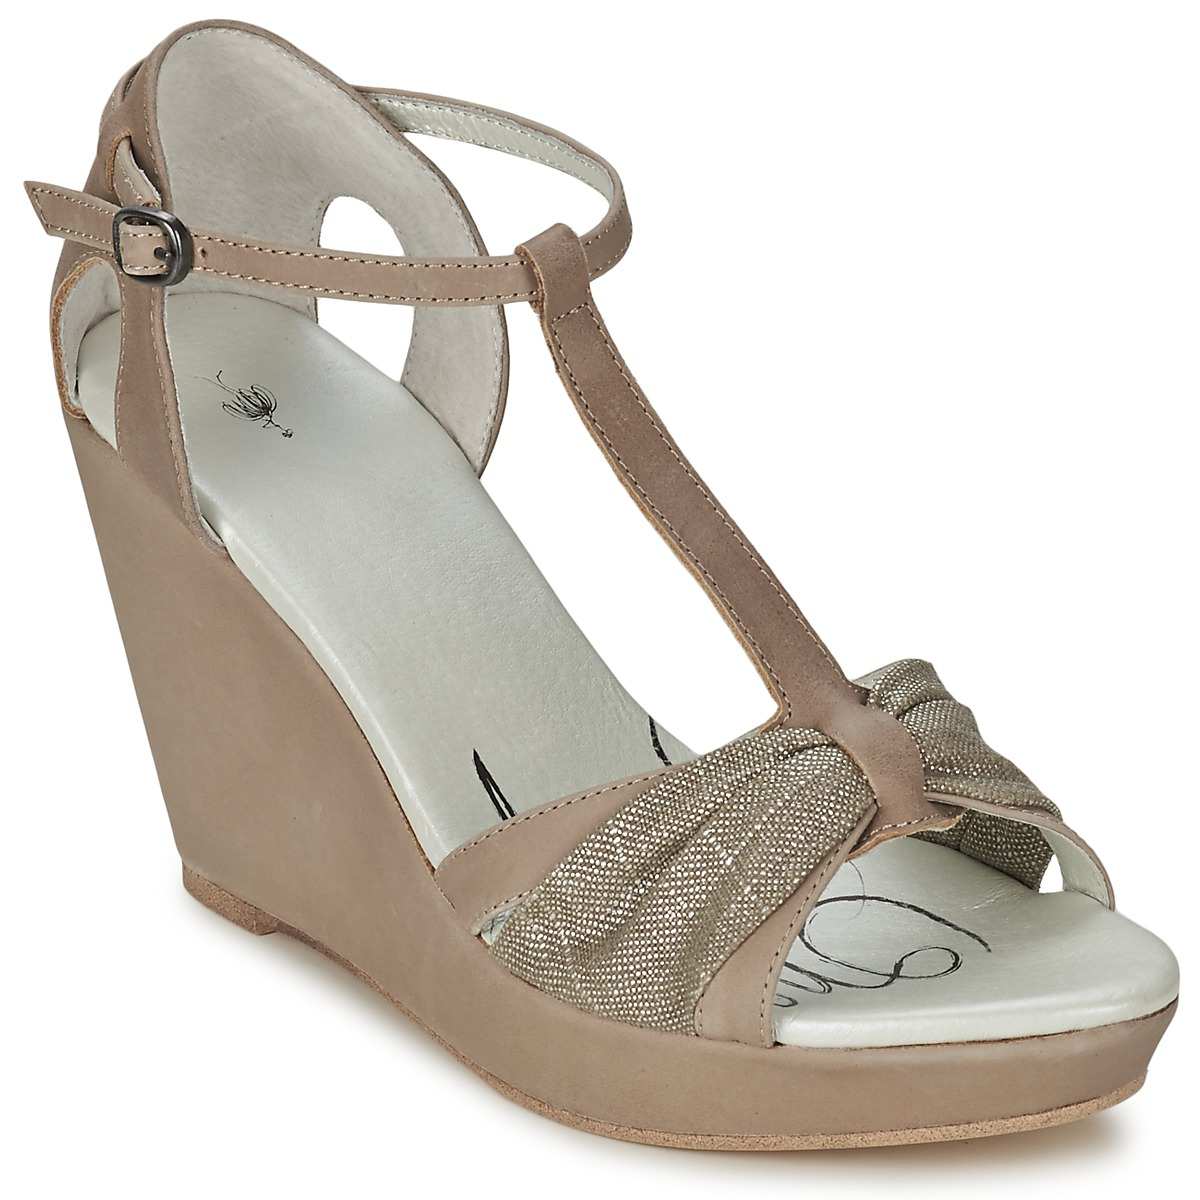 Sandale One Step CEANE Taupe/doree taupe